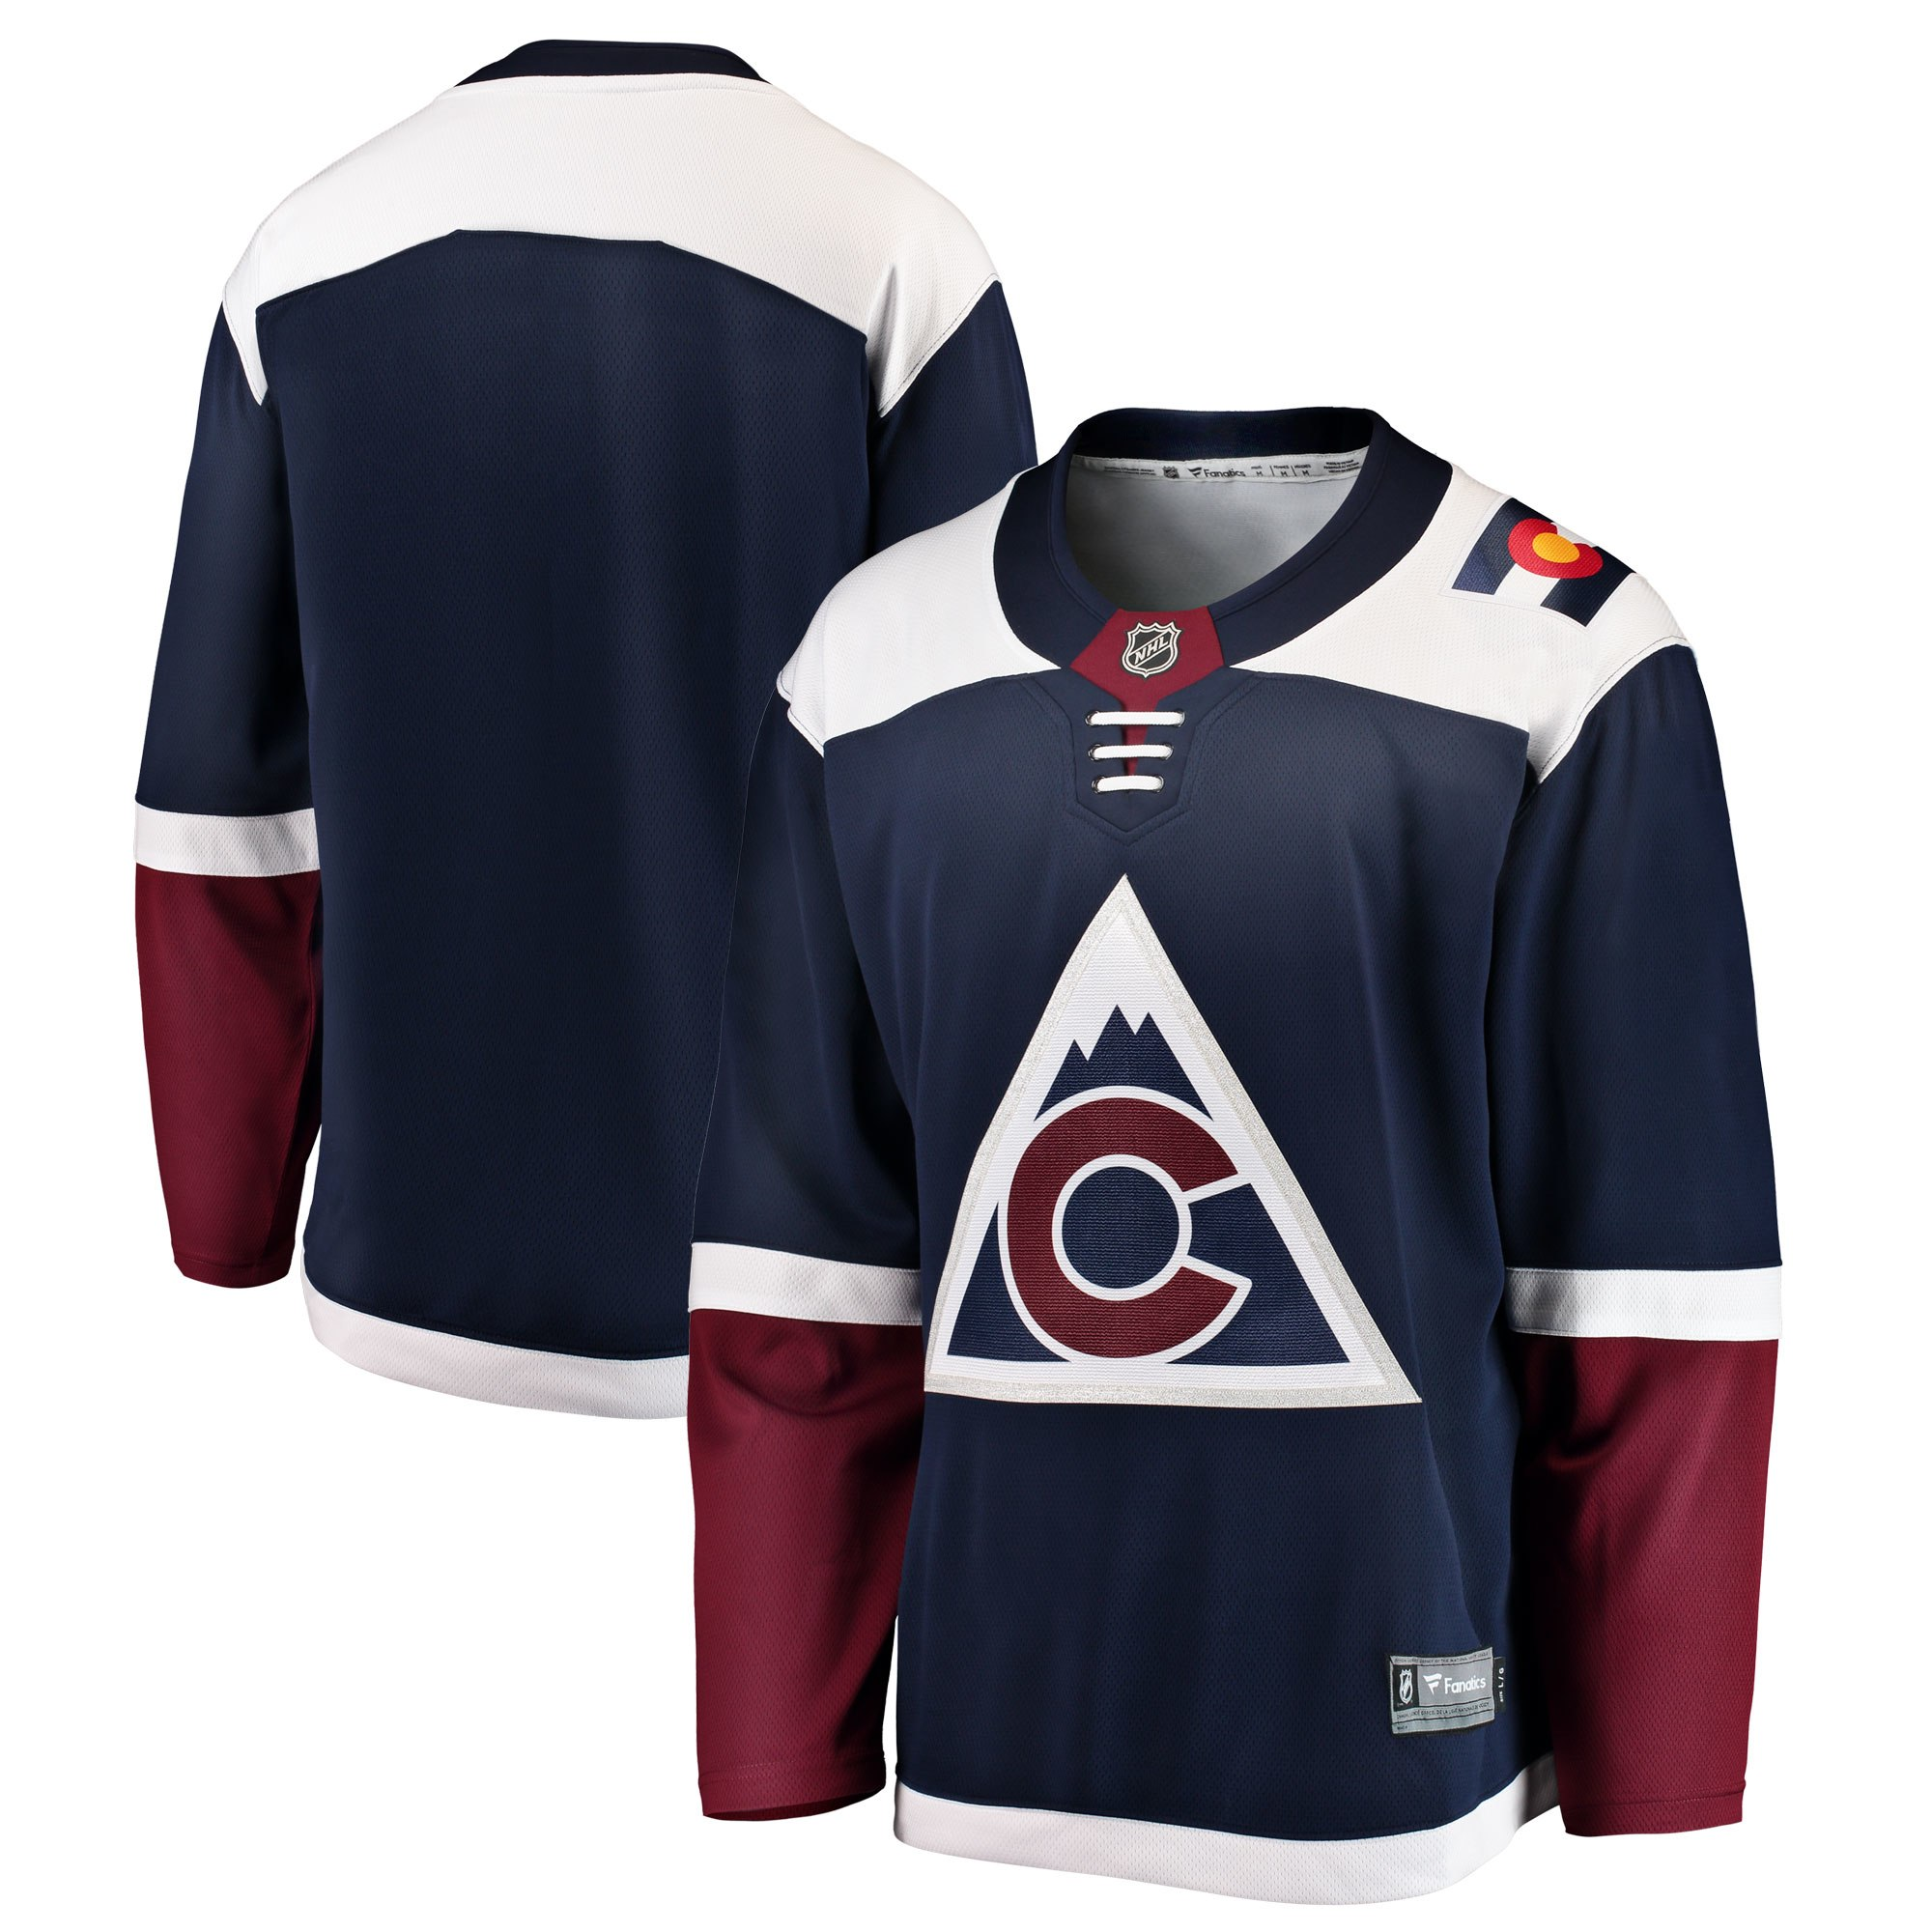 lowest price 3a857 72058 Jersey - Colorado Avalanche - J4008T-XL